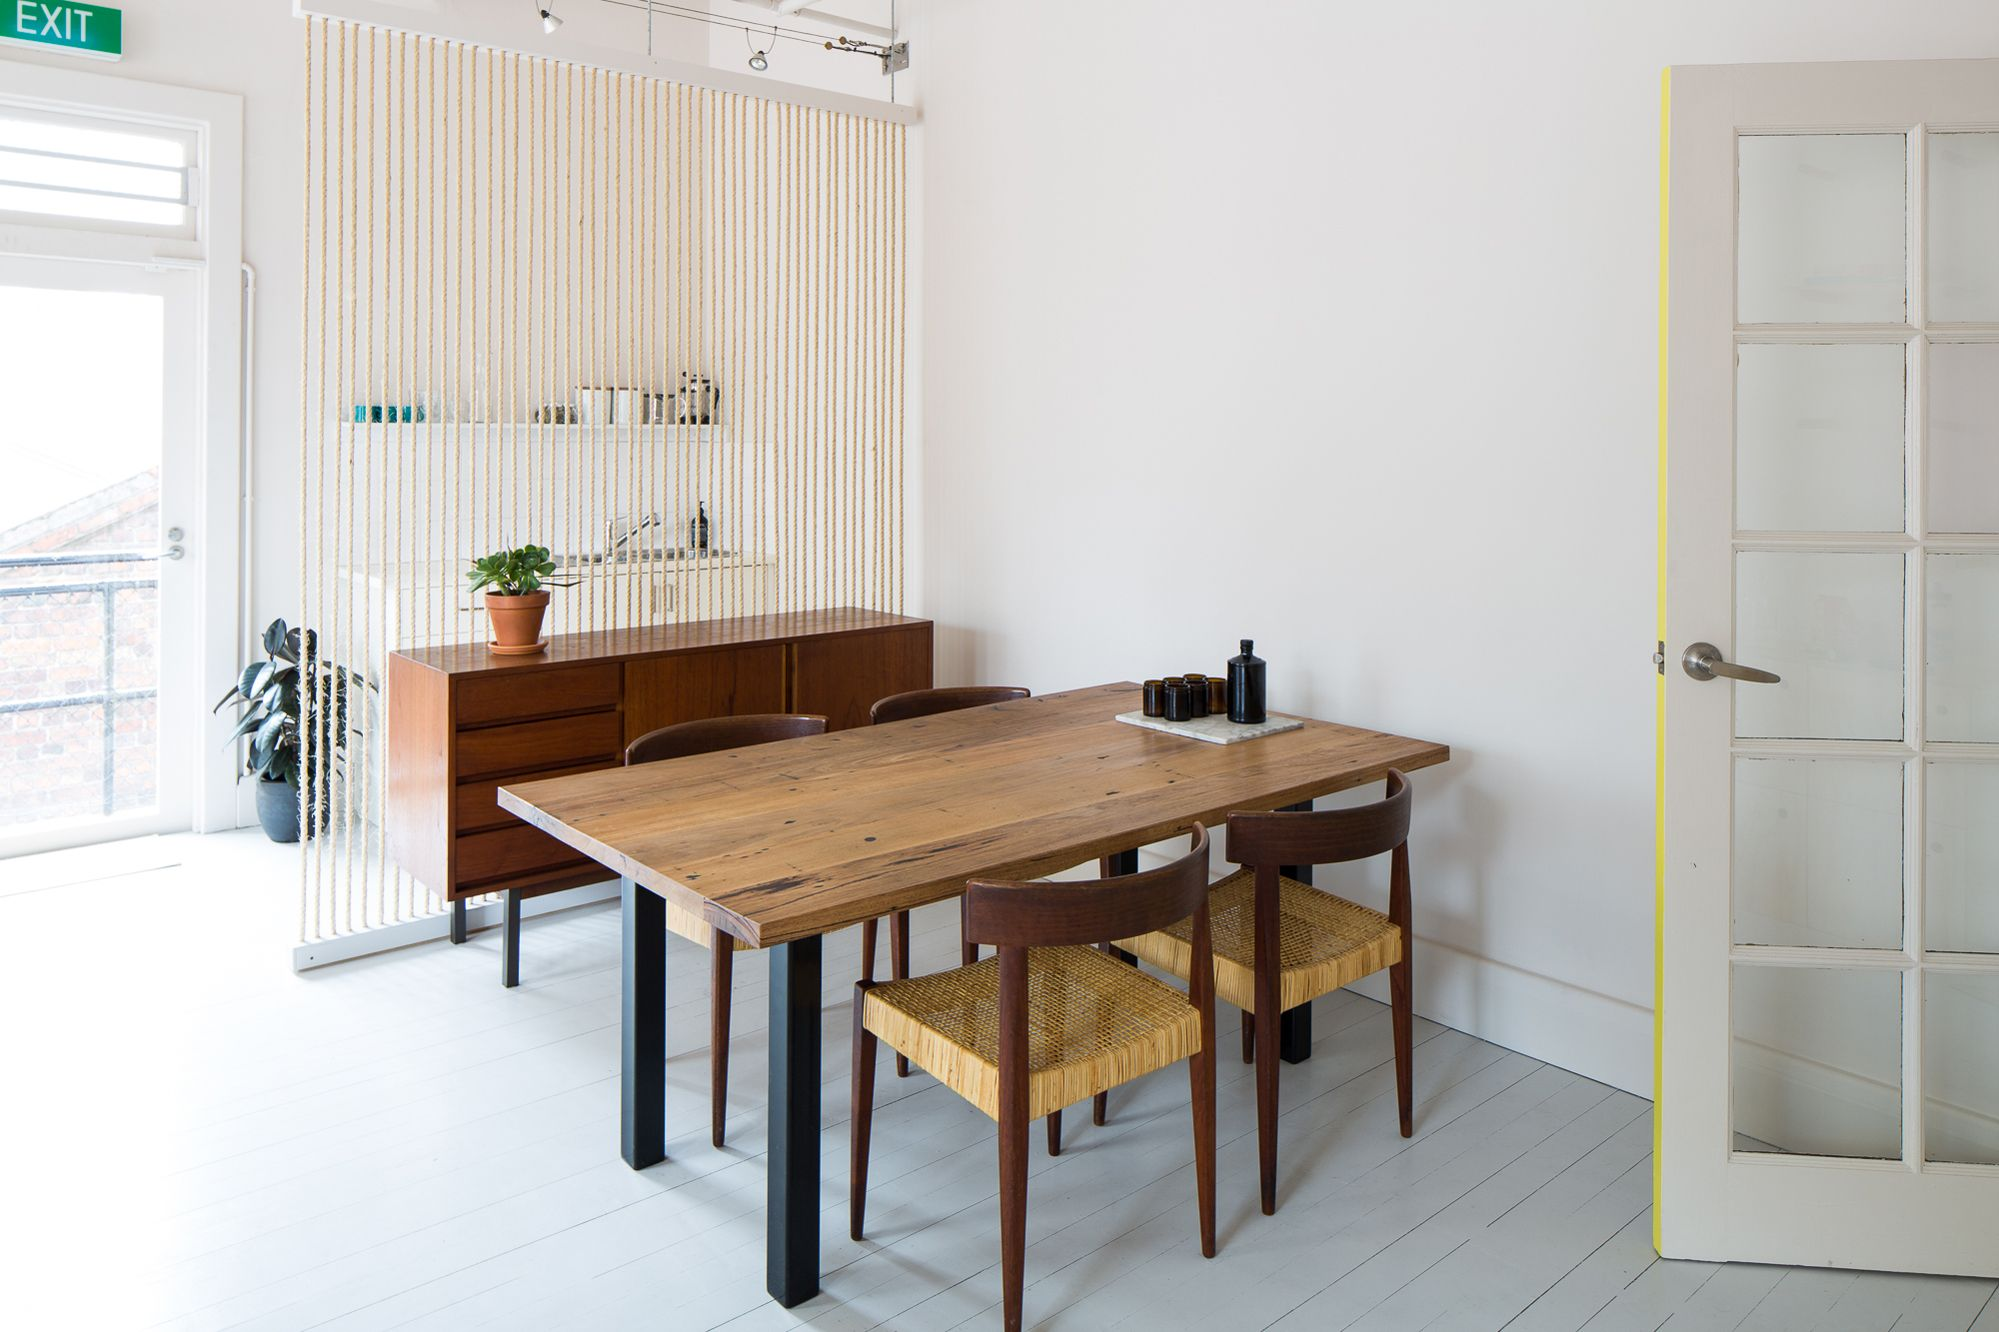 Screening option - use of rope ties in with nautical/bayside feel. Curtin House Studio in Melbourne